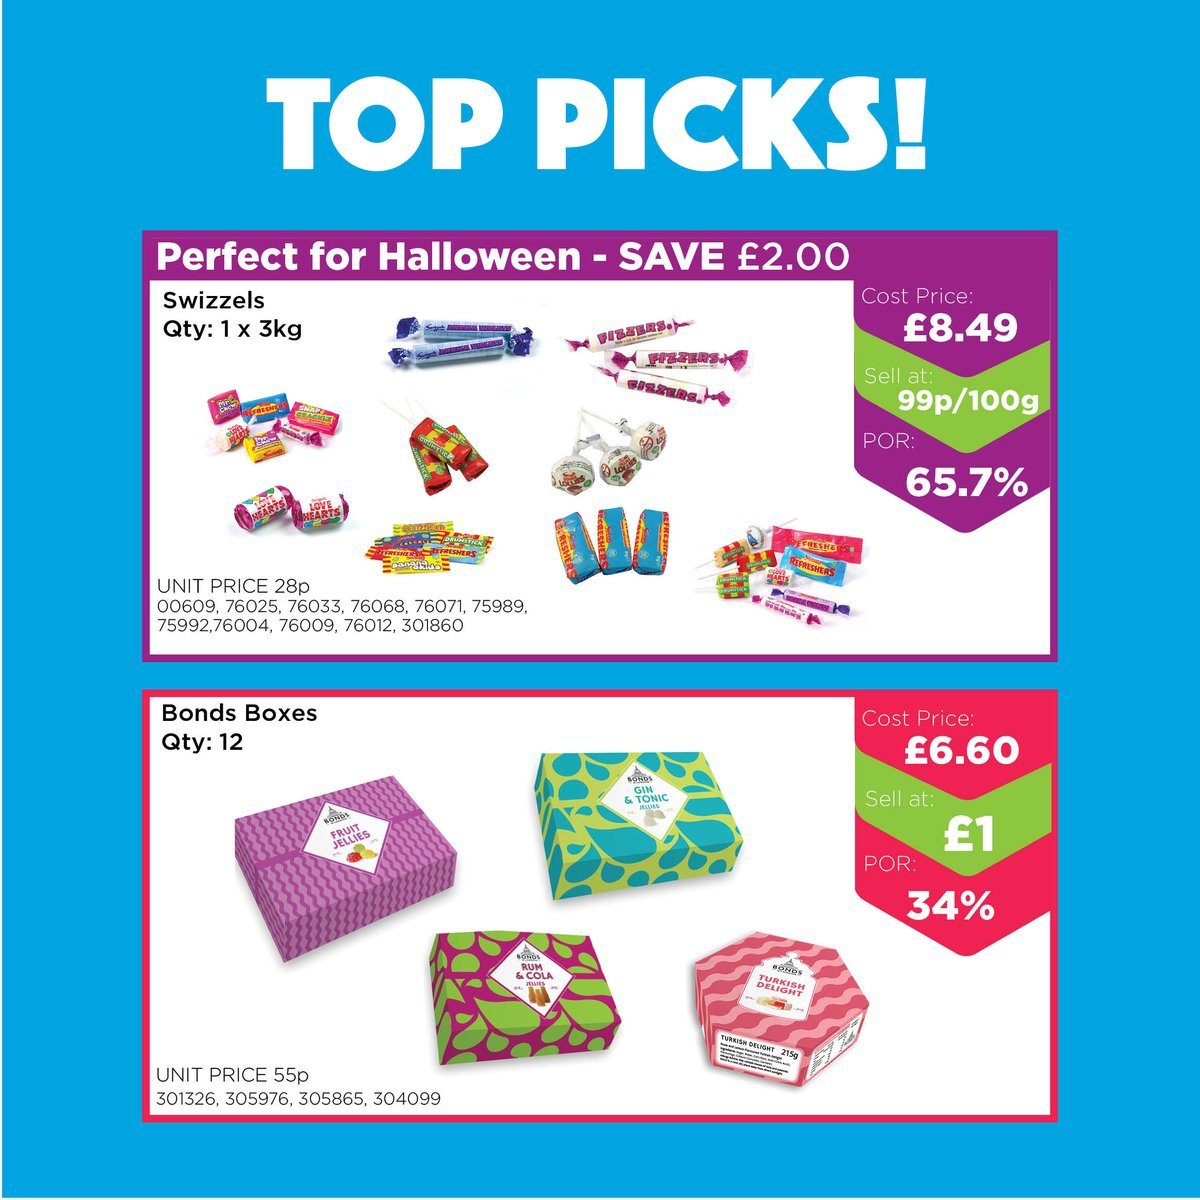 ❄️ FREEZE! ❄️ And check out our top picks for our next offer sheet starting Sunday!   Shop these offers and more in all of our Hancocks stores from 9am-1pm tomorrow or check them out online here 👉 https://t.co/TBxrQ8yEnk https://t.co/hVopUDnpJn